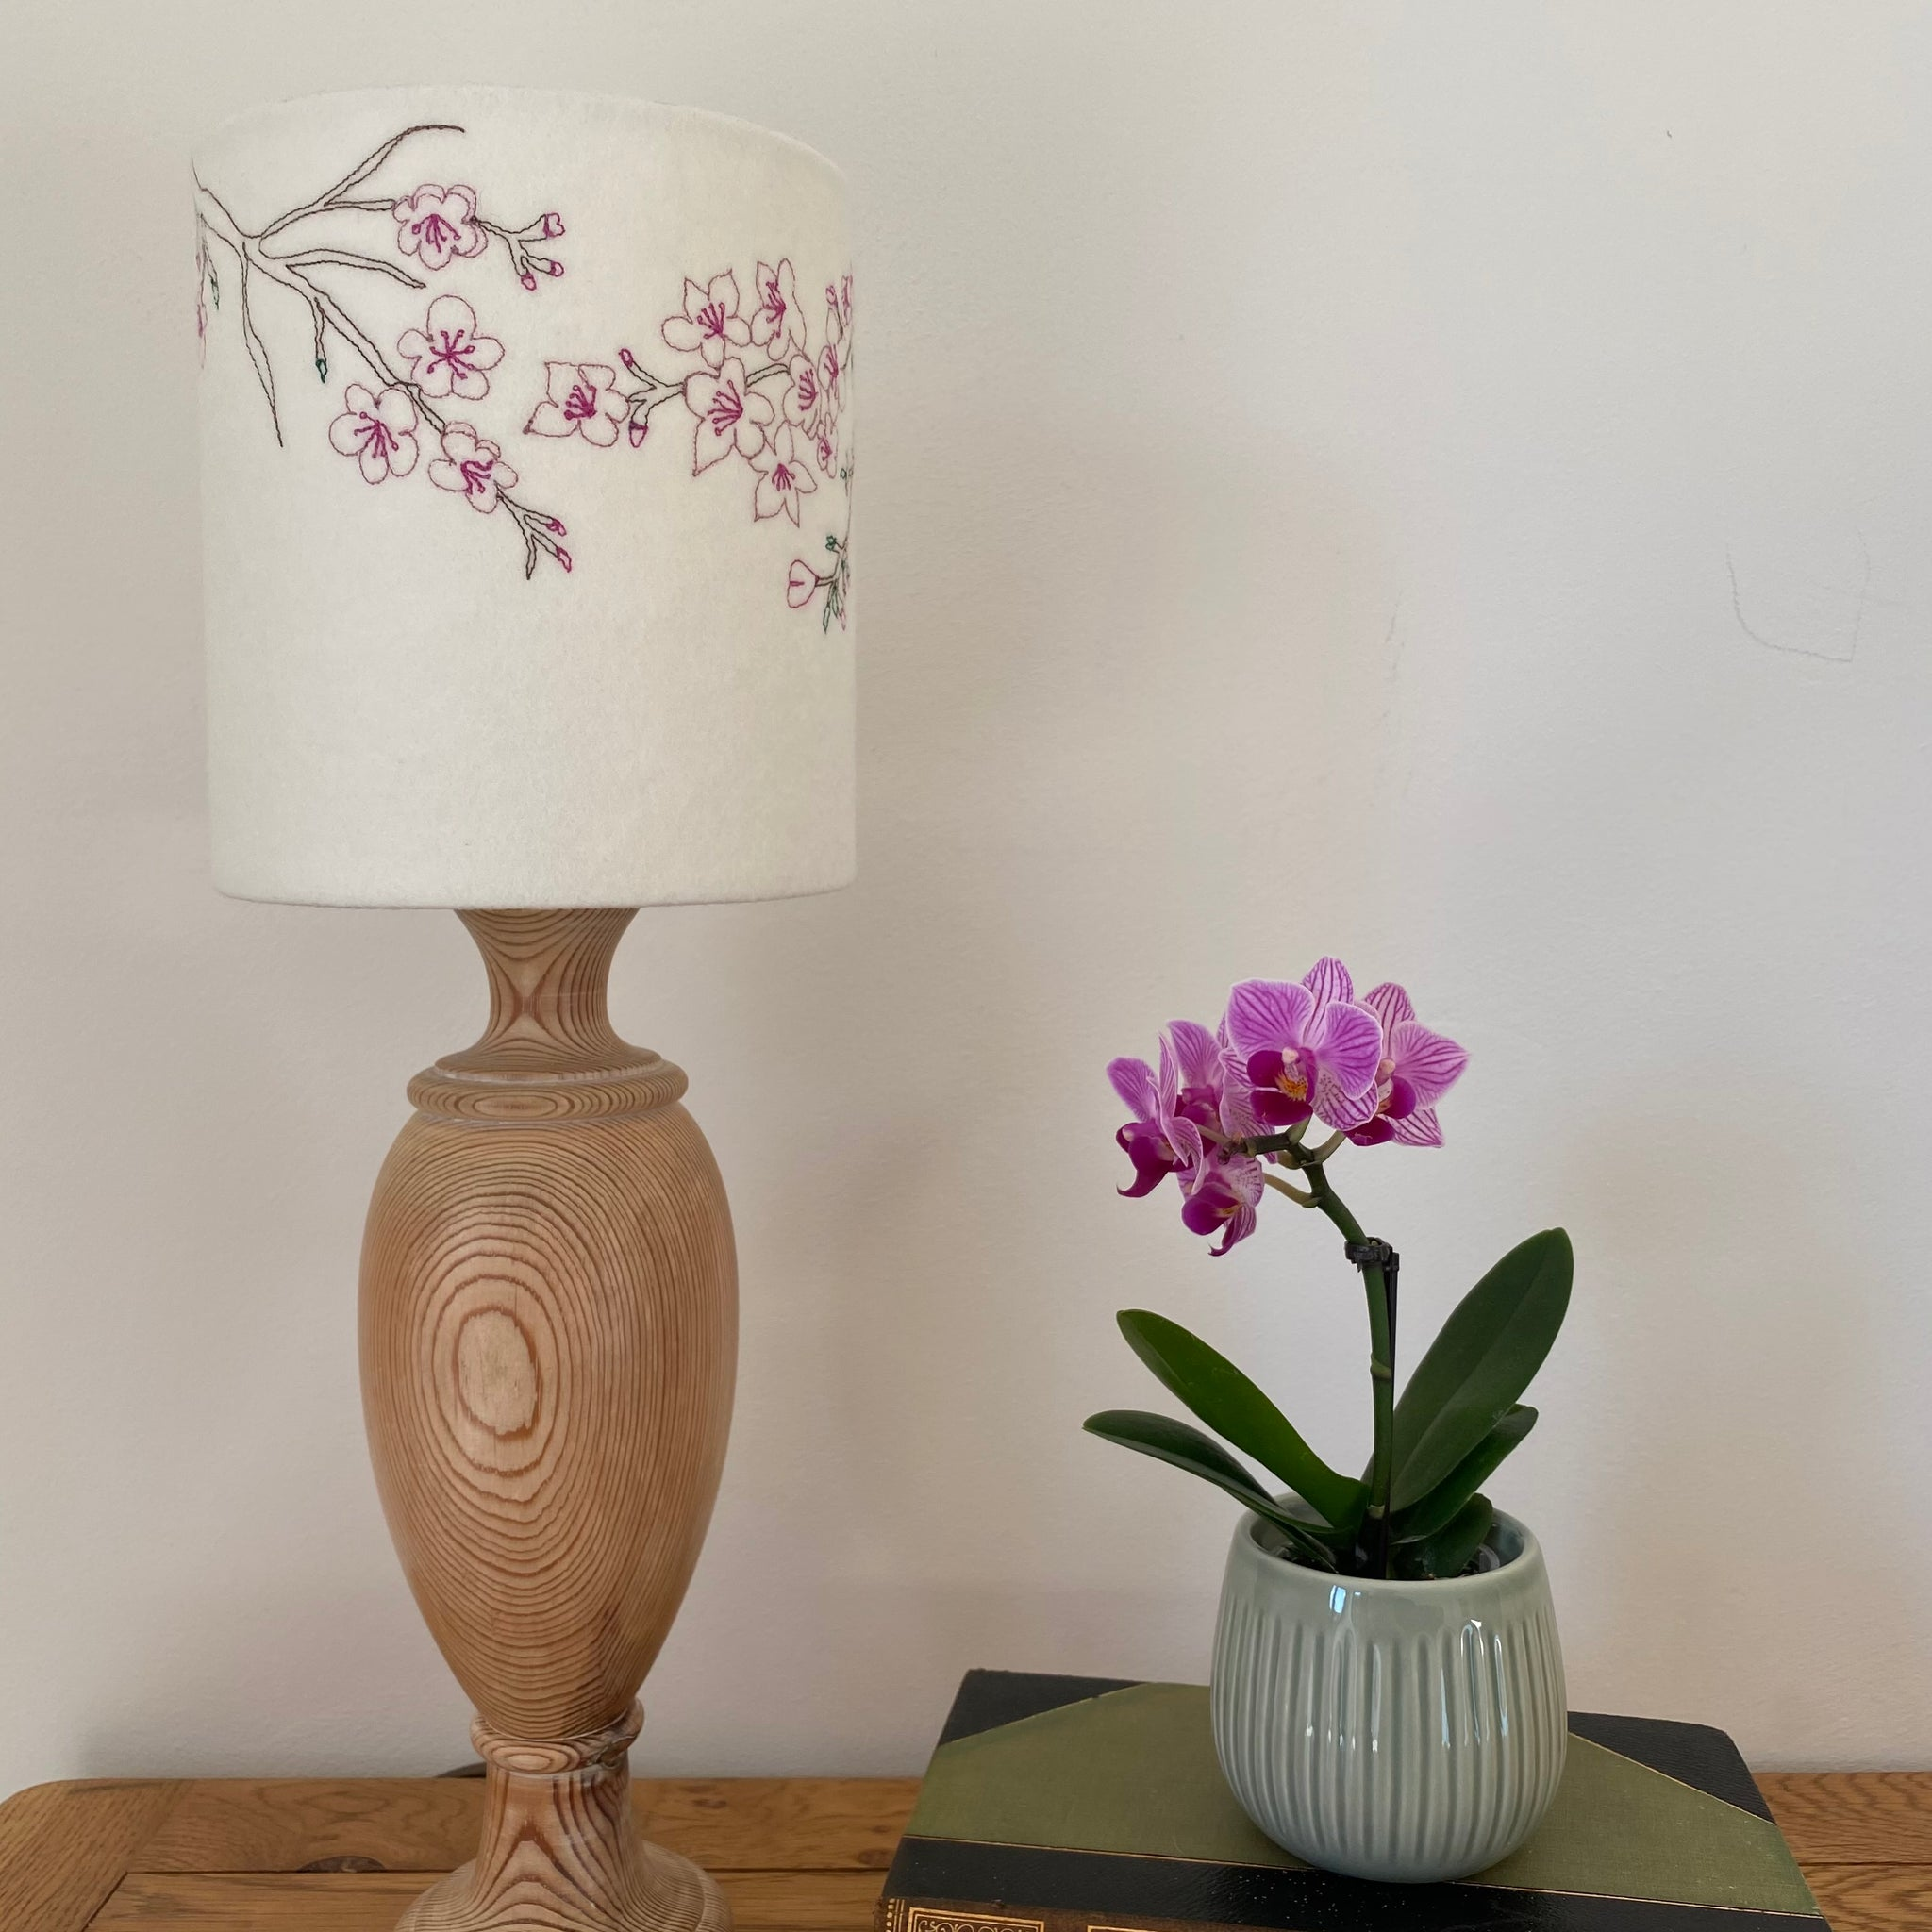 Cherry blossom 'seconds' lampshade